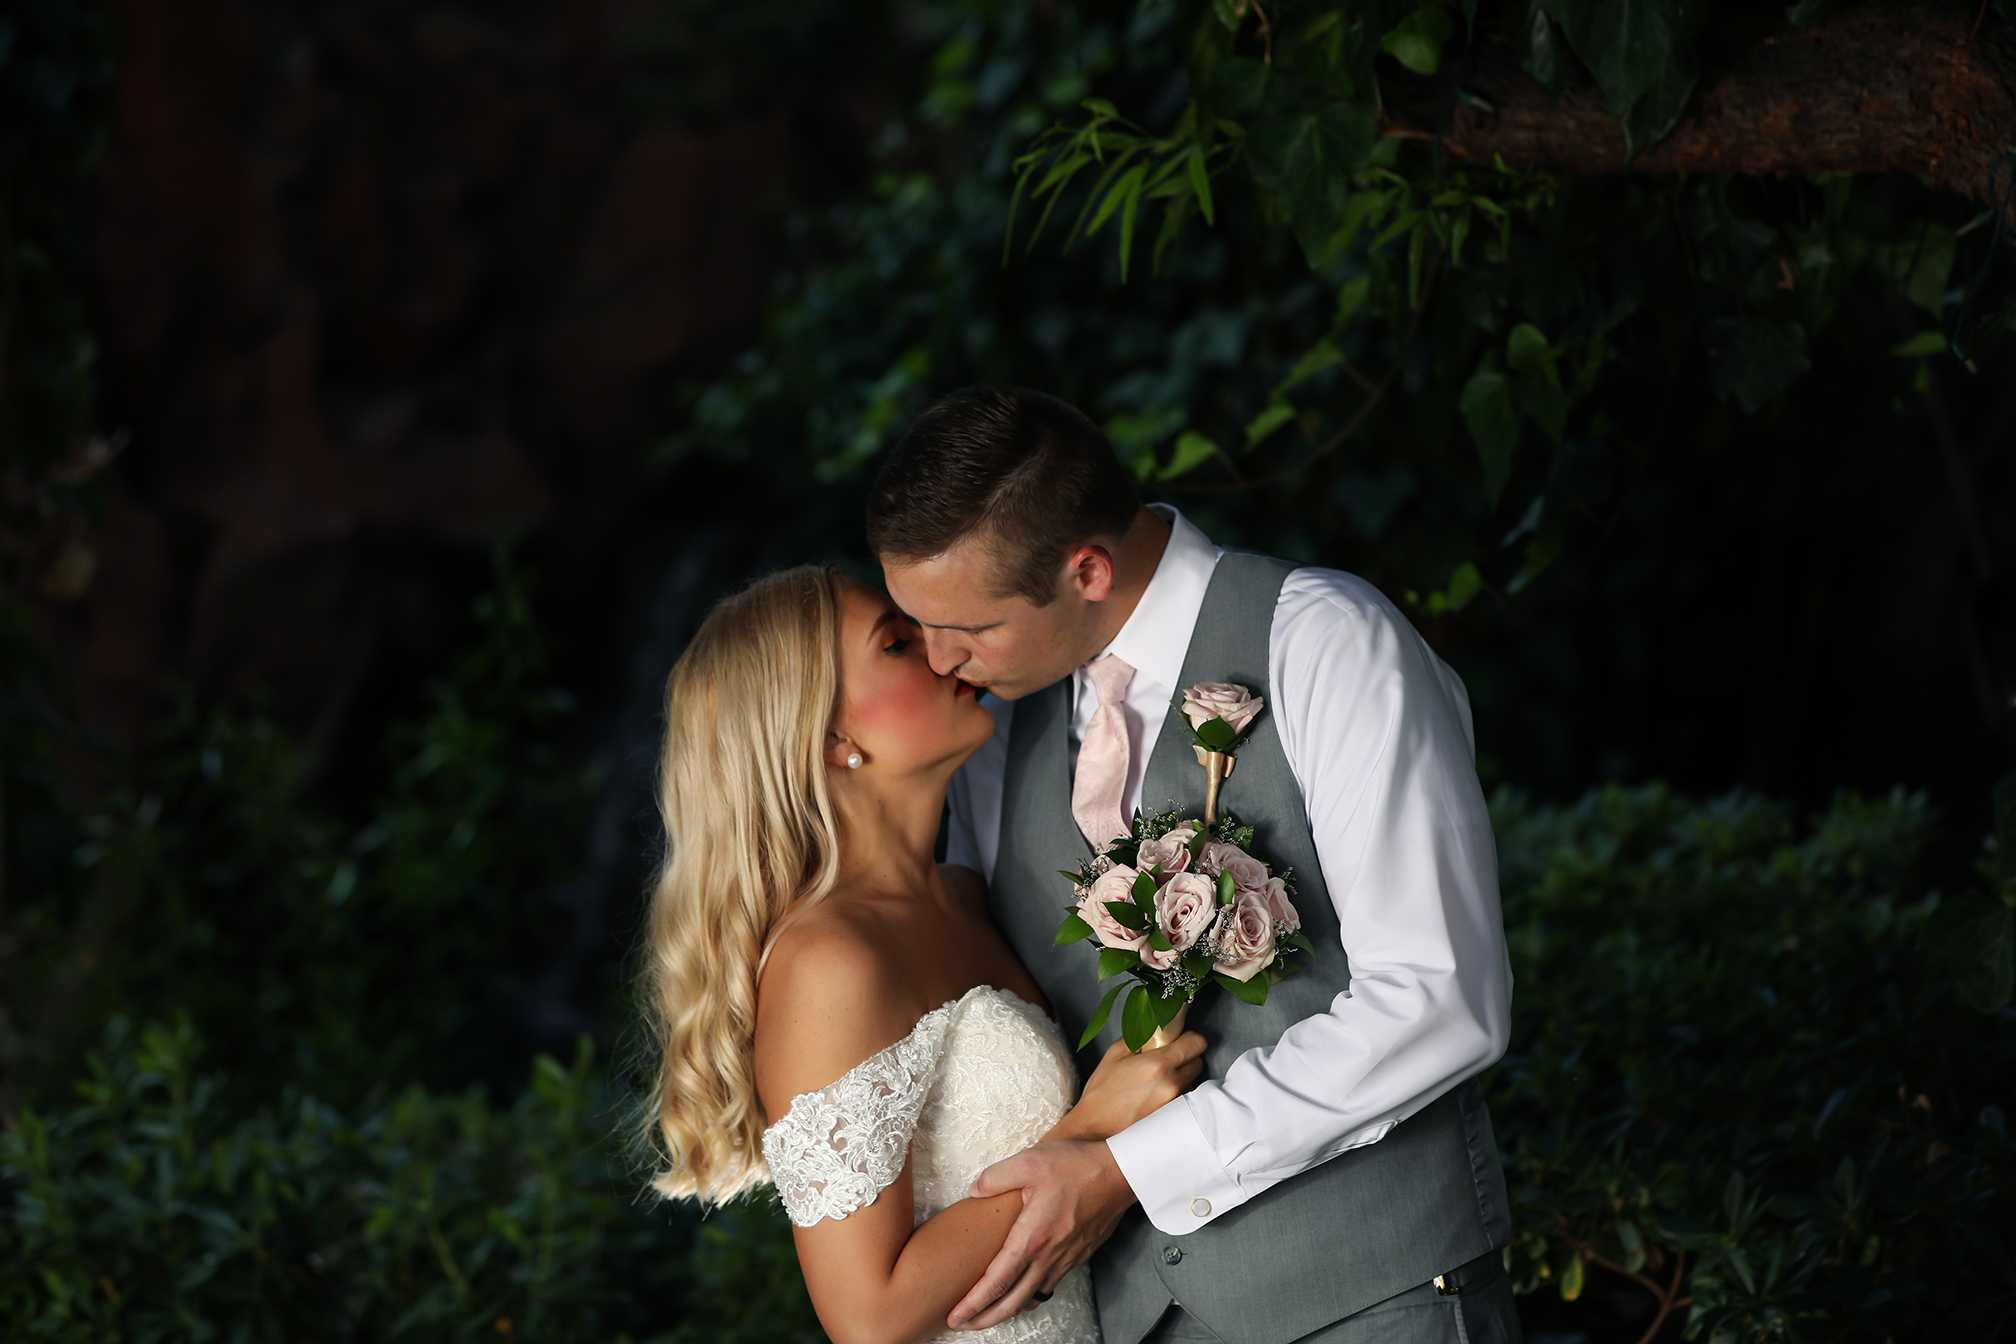 The best wedding photography in vegas